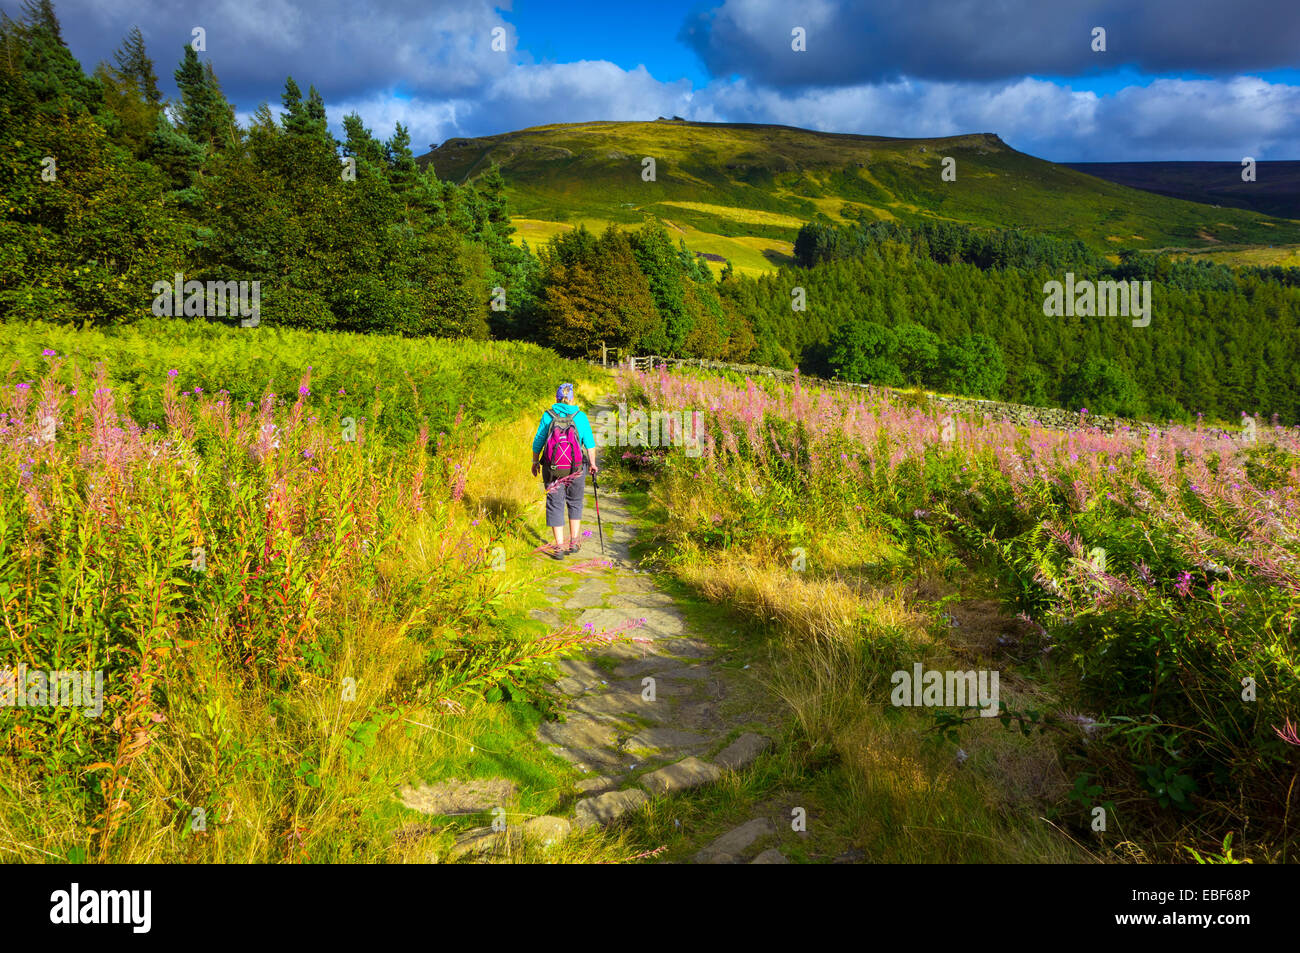 Female Walker with rucksack on Cleveland Way, North York Moors, Yorkshire, UK - Stock Image